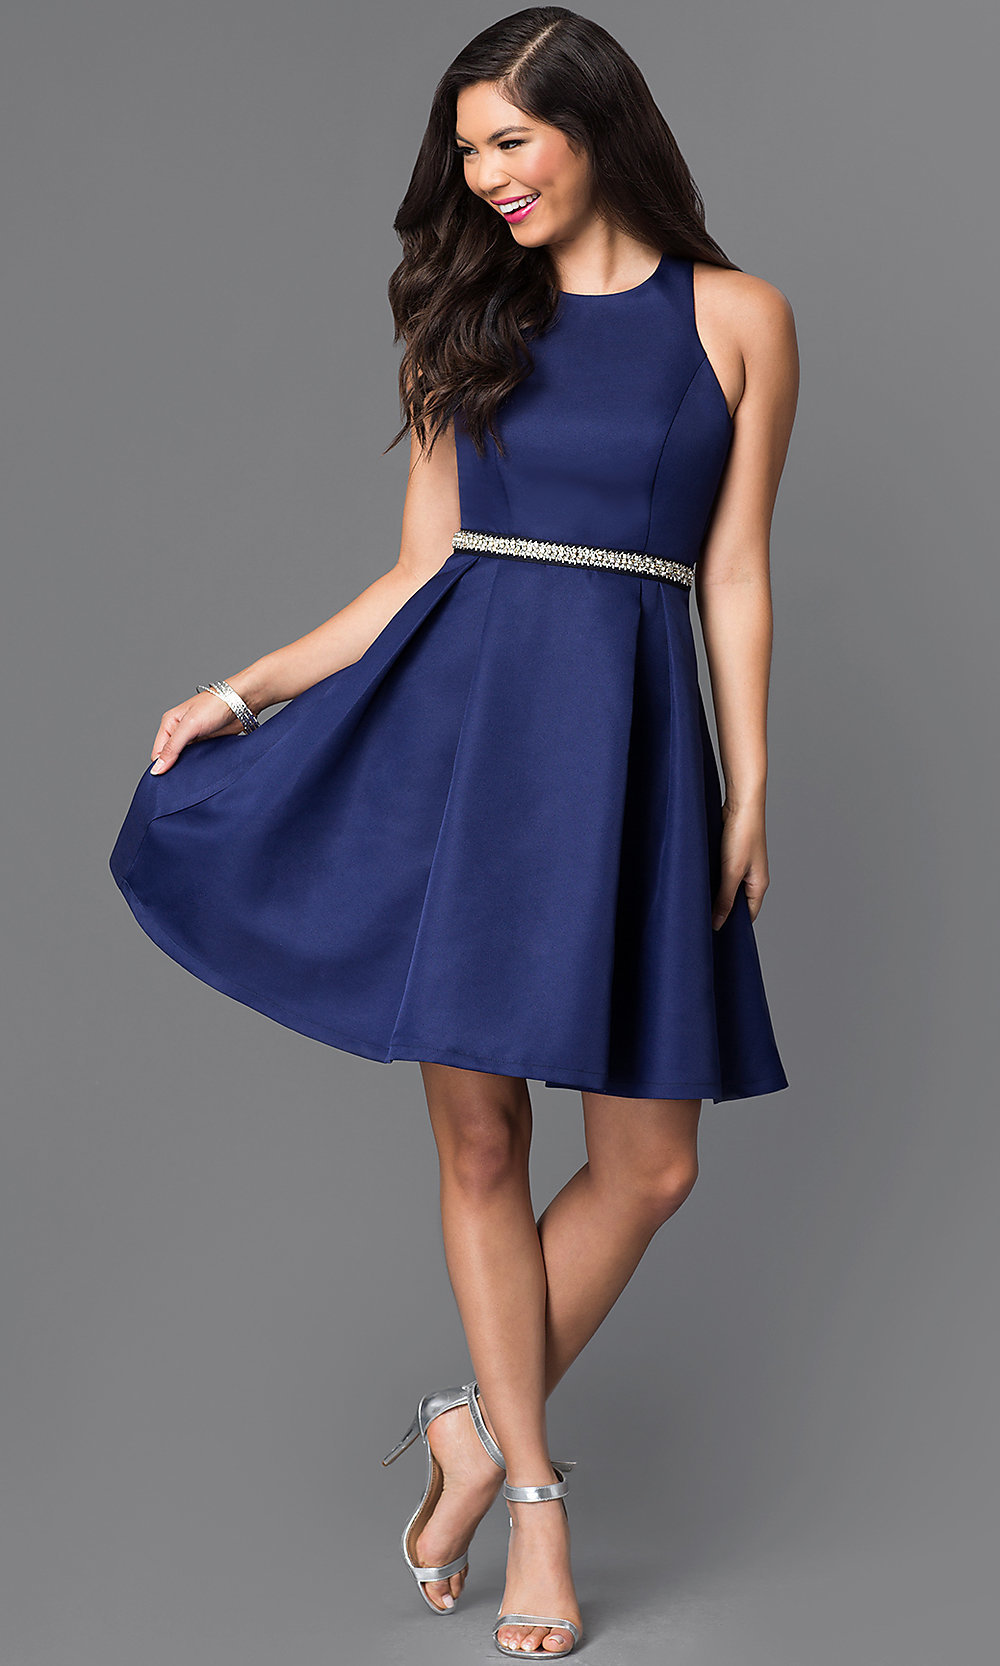 Navy Blue Short Homecoming Party Dress Promgirl